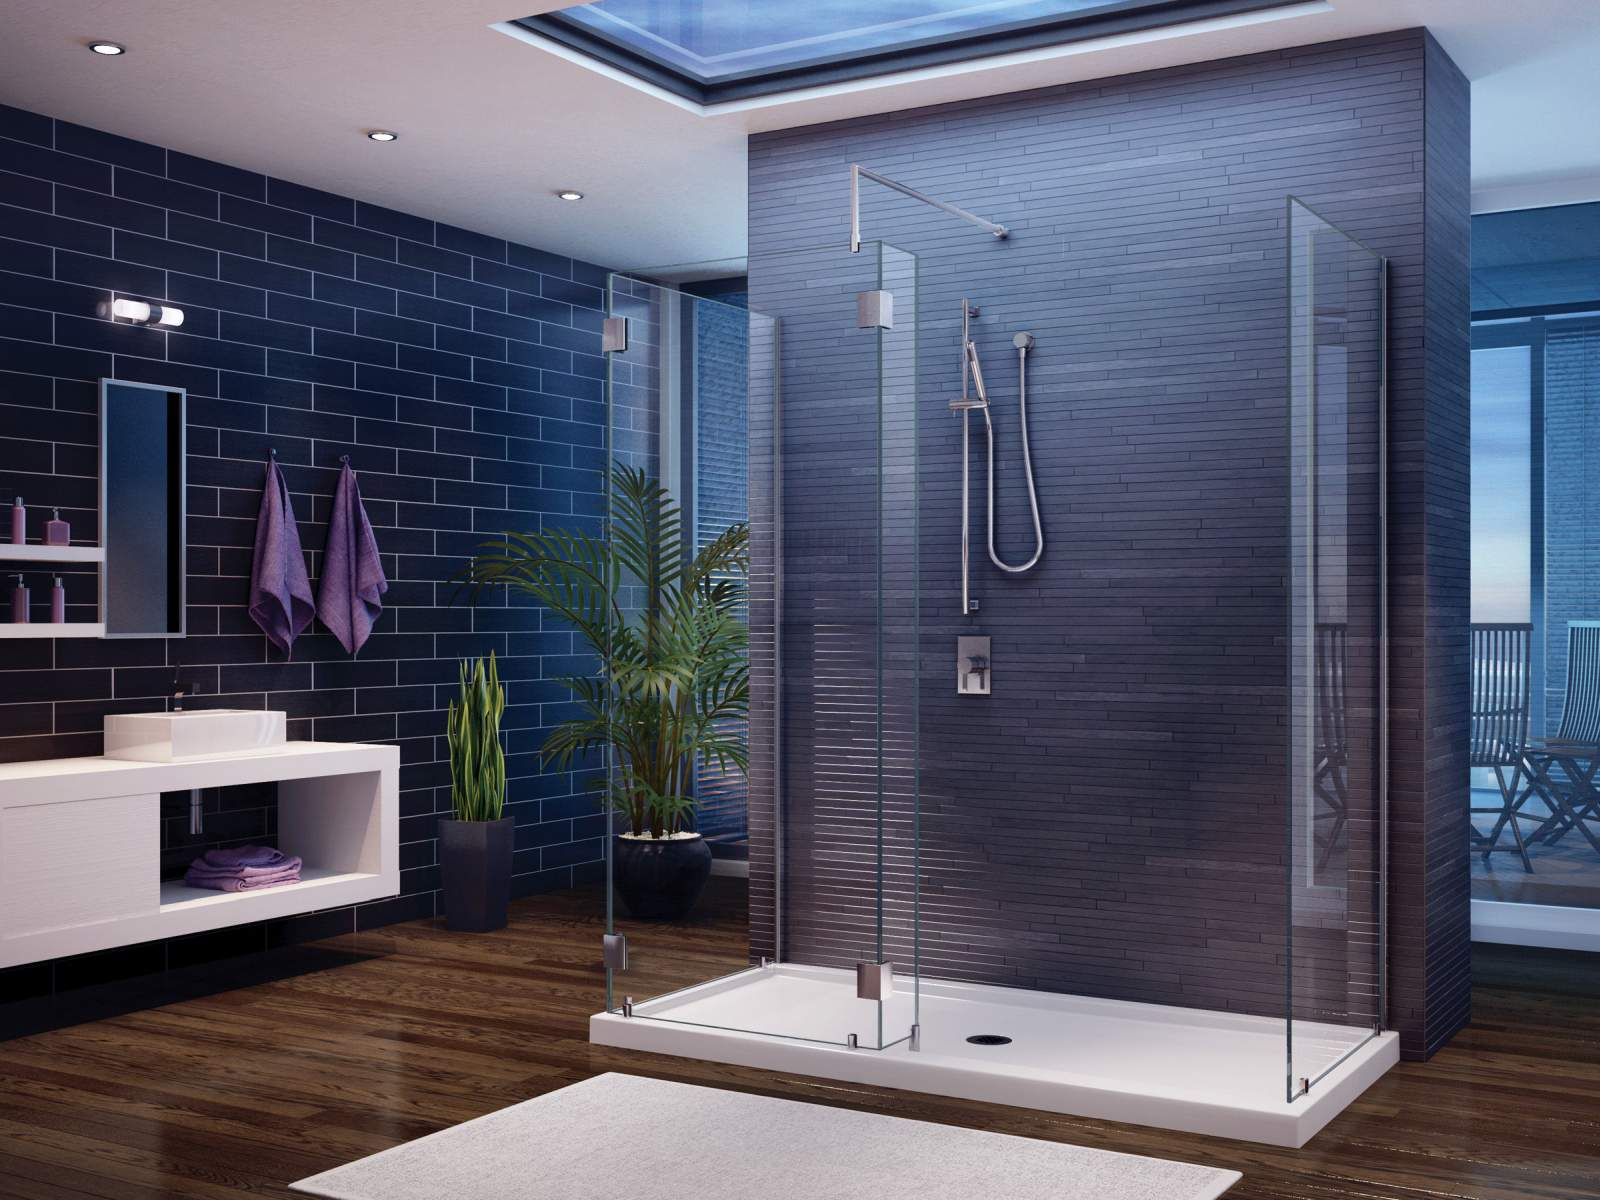 Amazing bathroom shower design idea